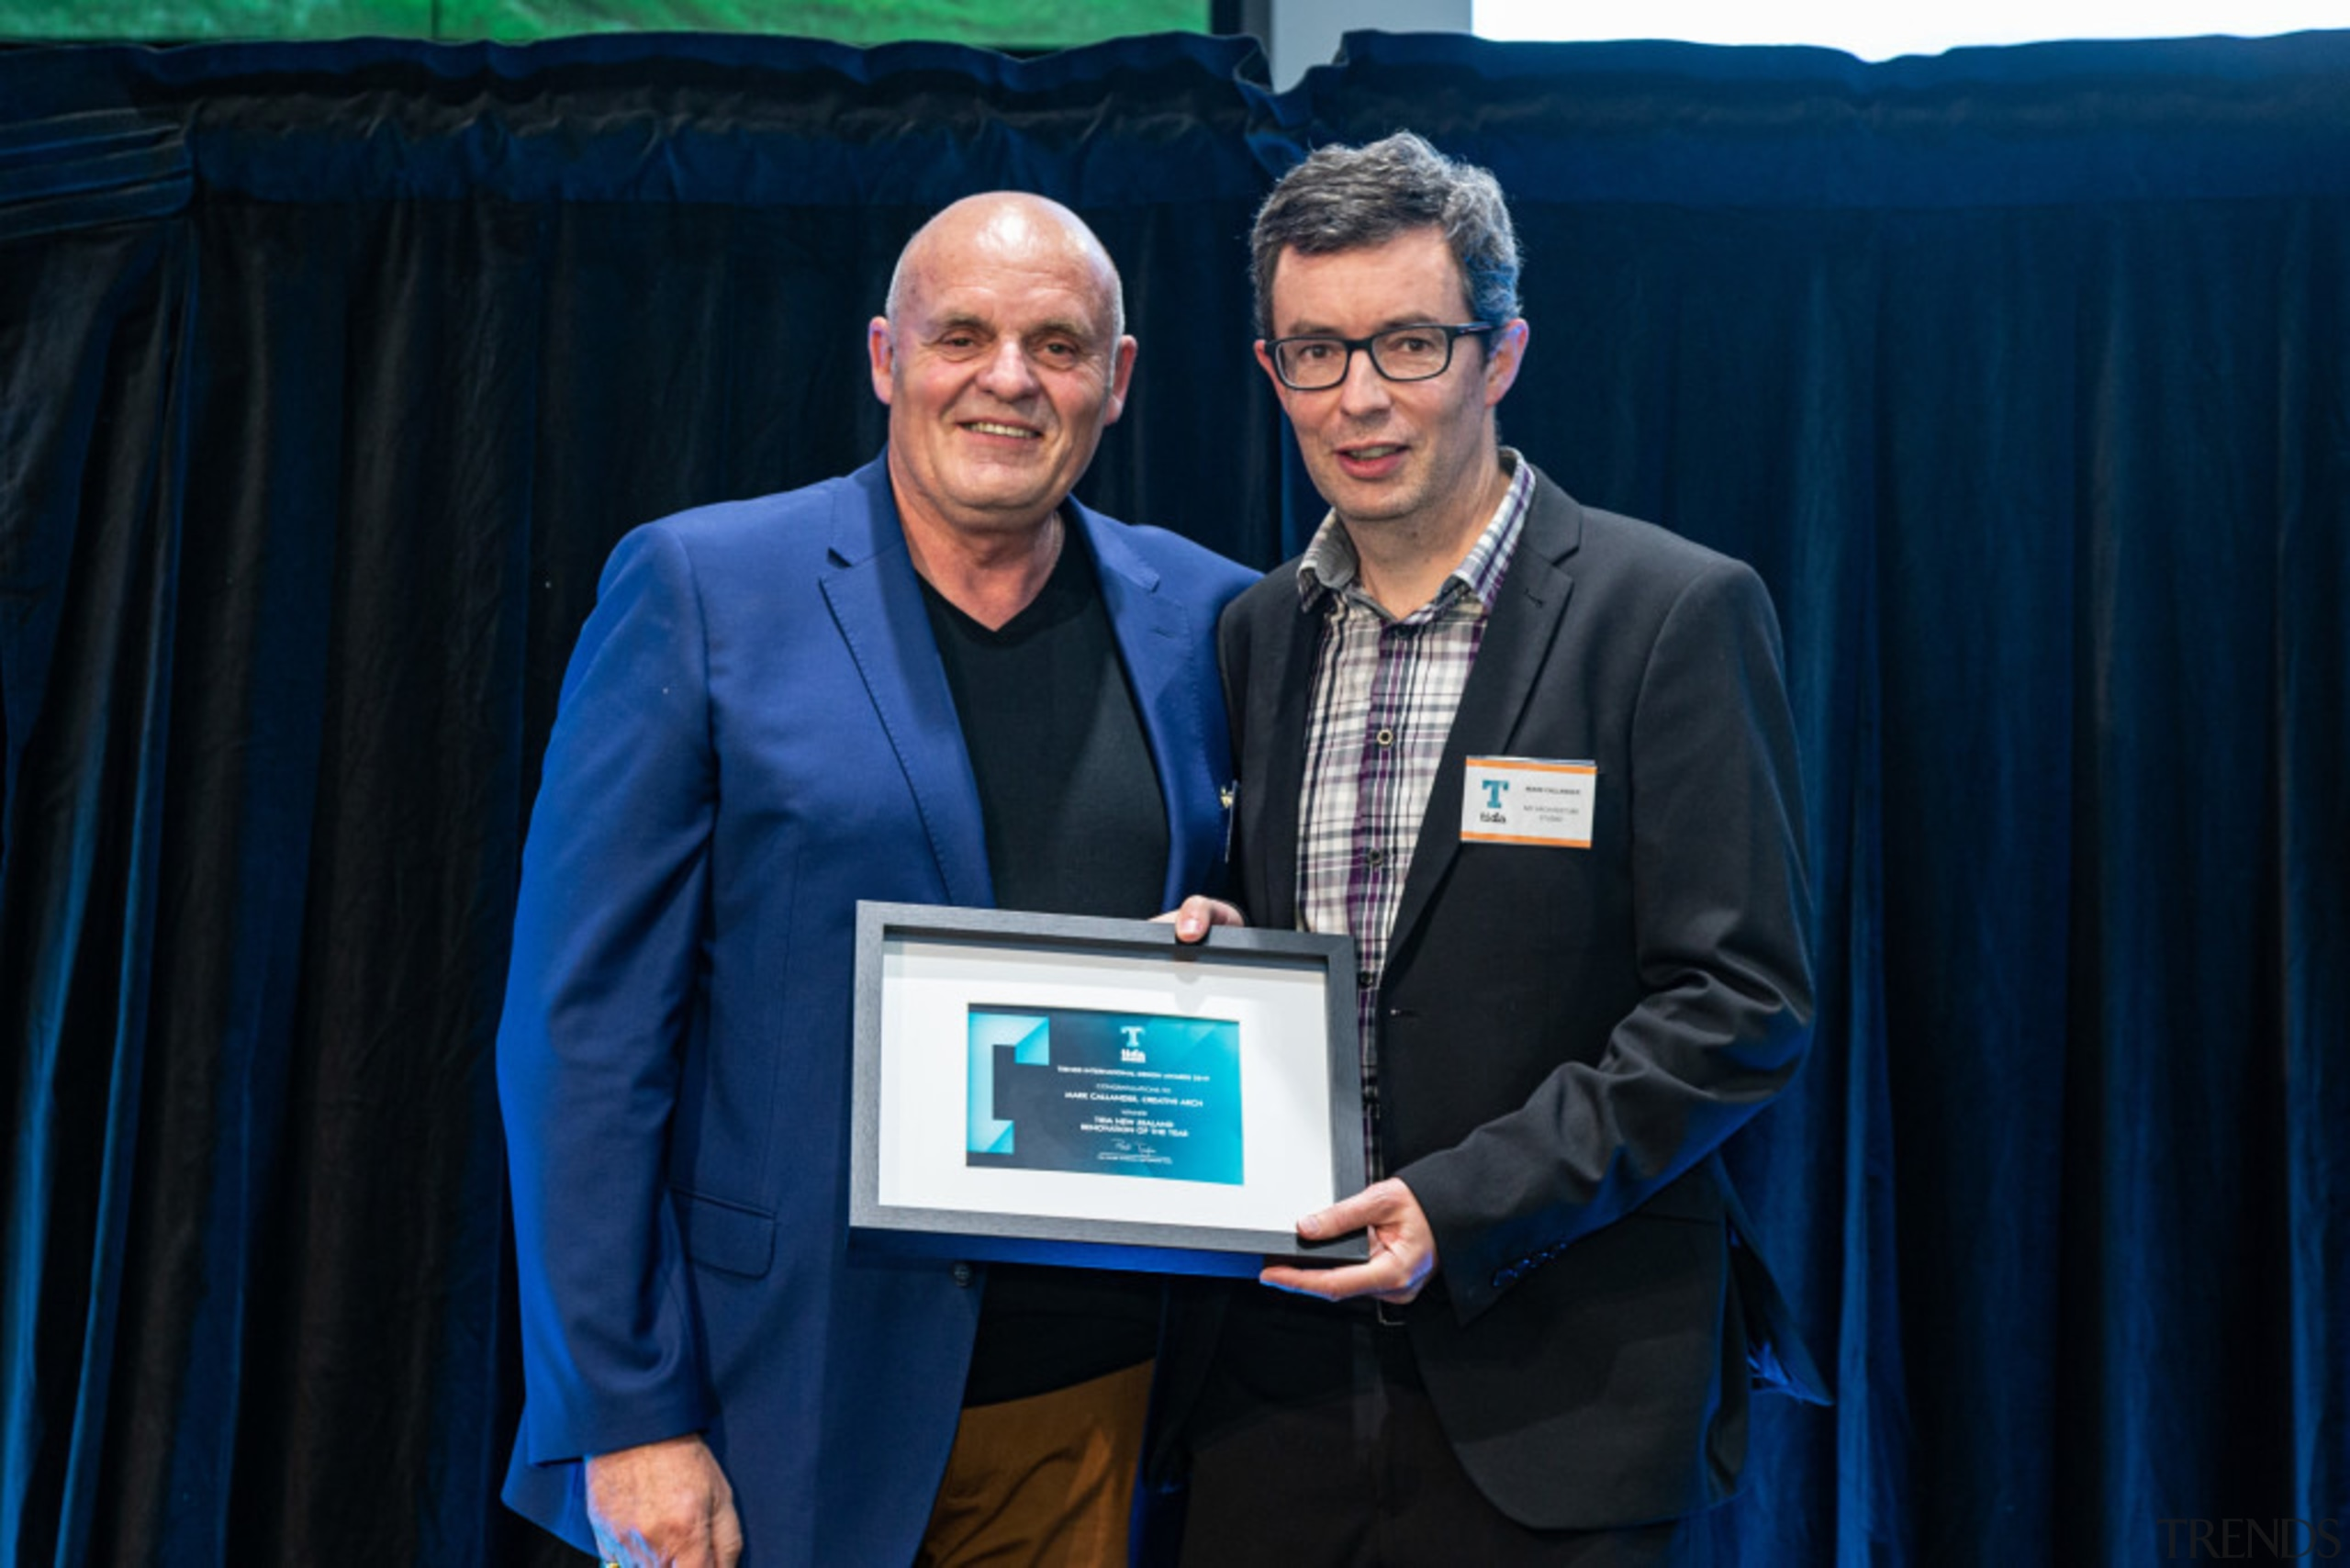 2019 TIDA New Zealand Homes presentation evening award, award ceremony, electronic device, event, job, technology, blue, black